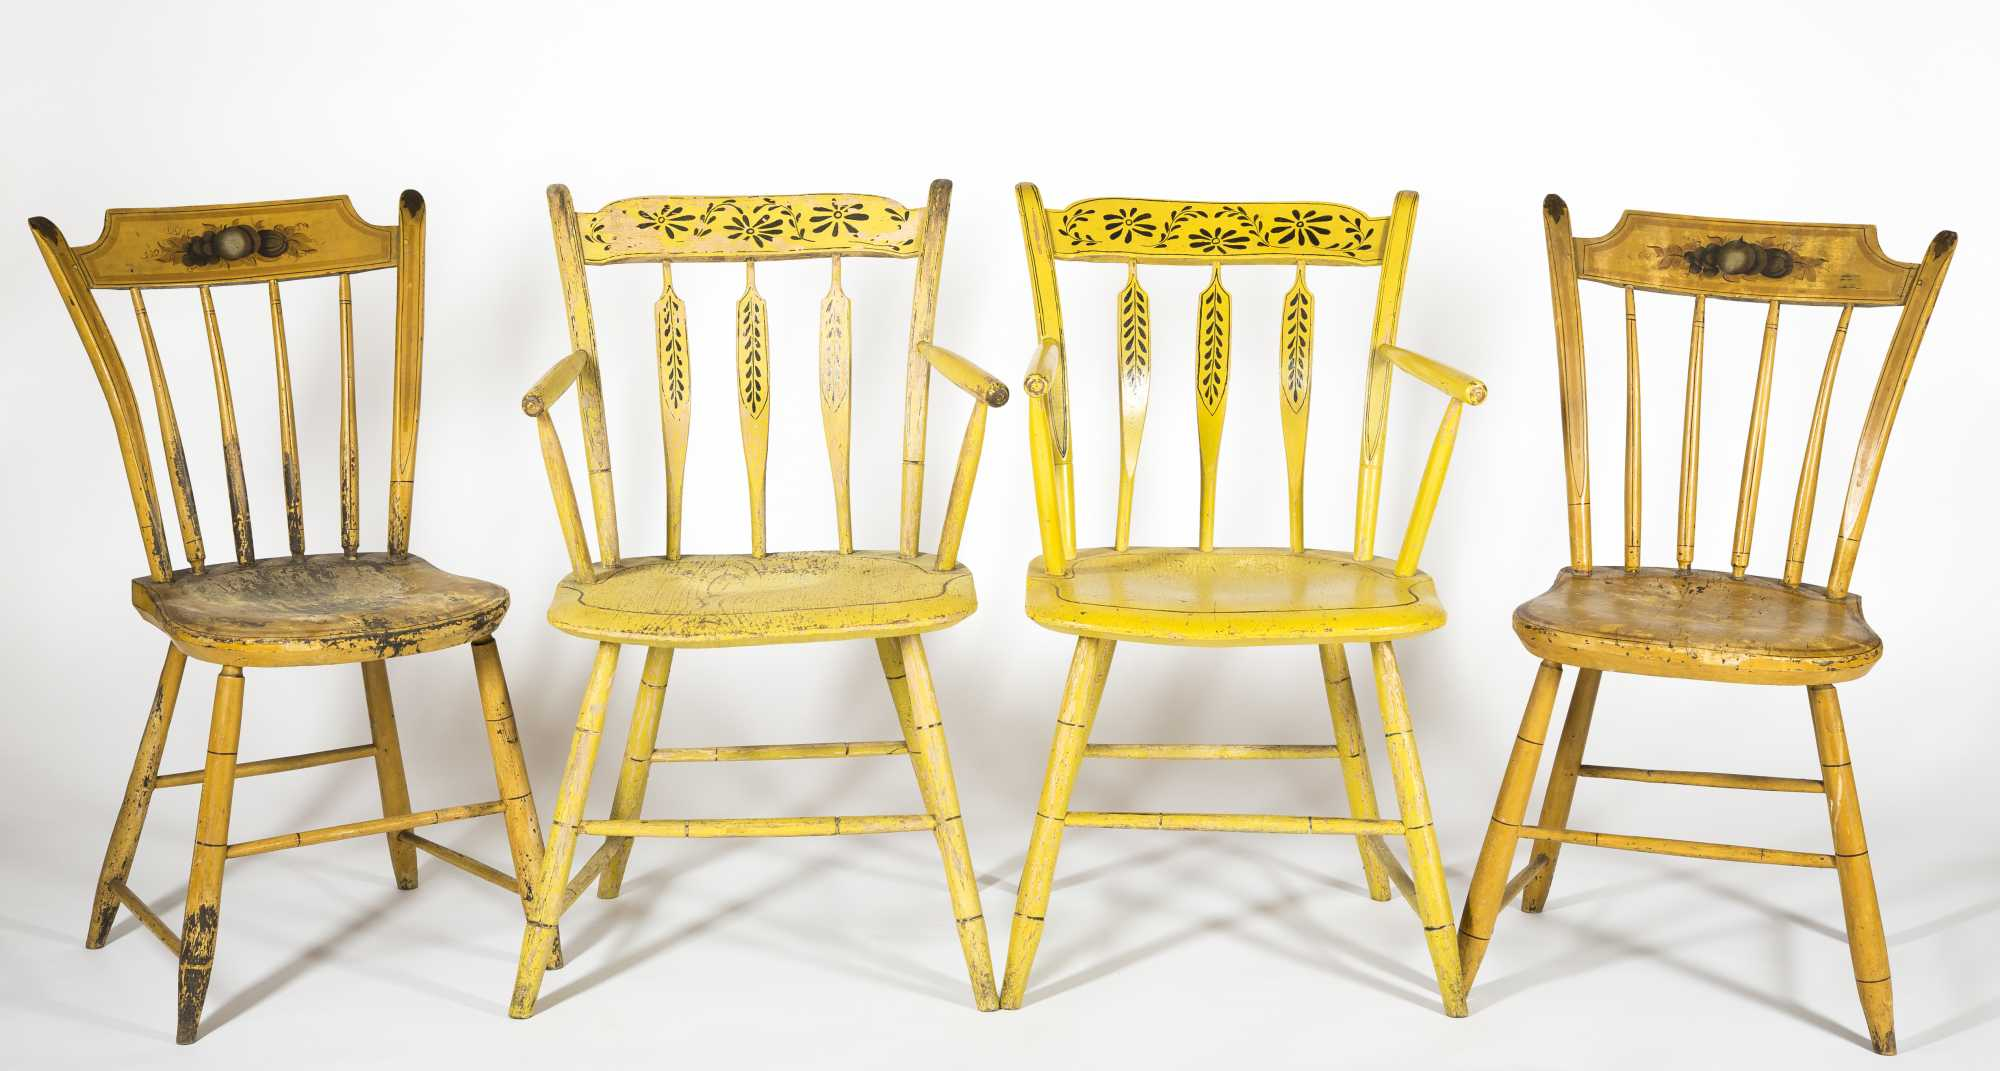 of Four Yellow Thumb back Windsor Chairs